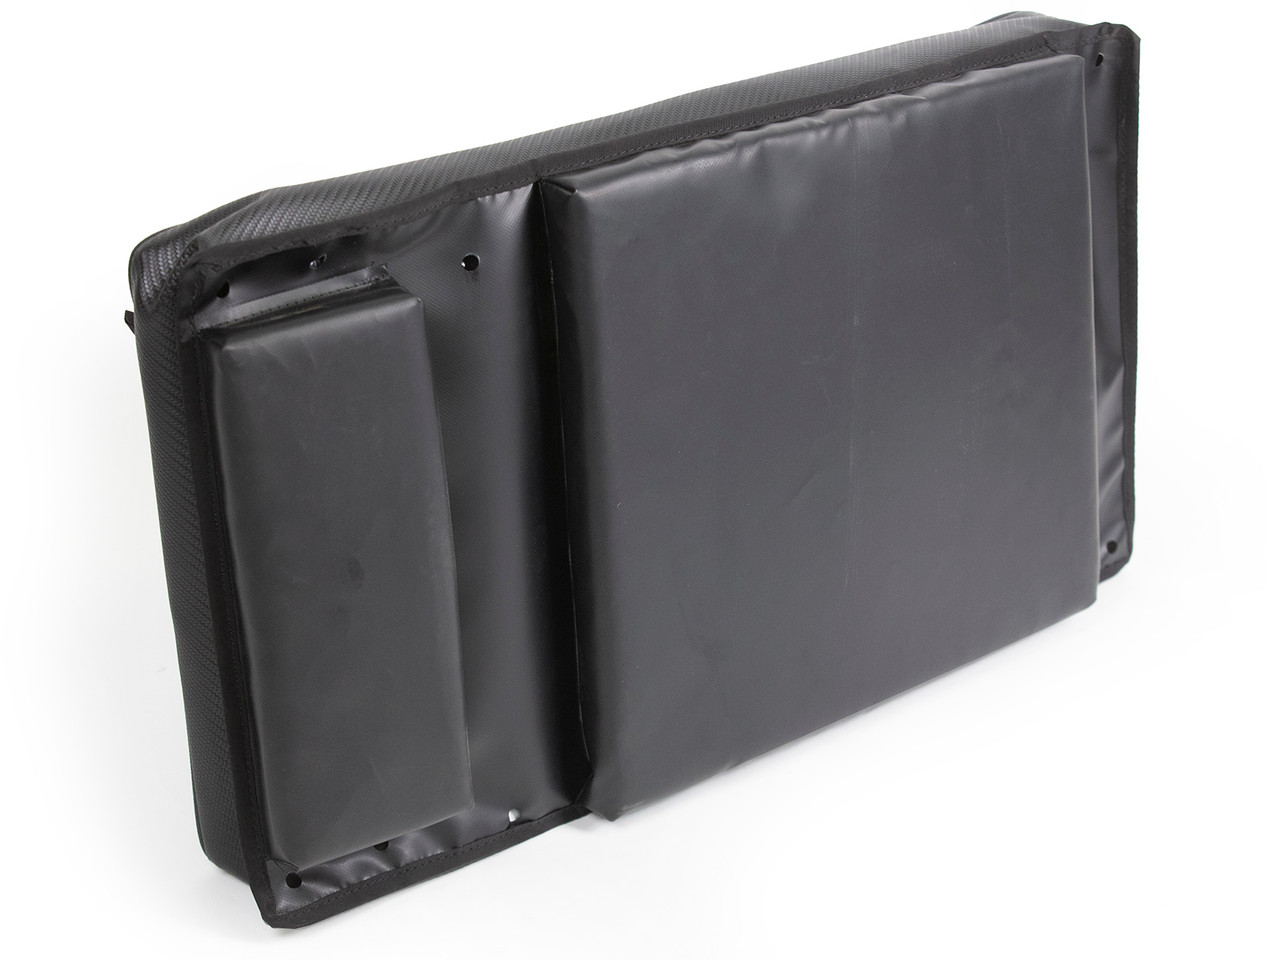 Padded backside to keep contents from banging on the door